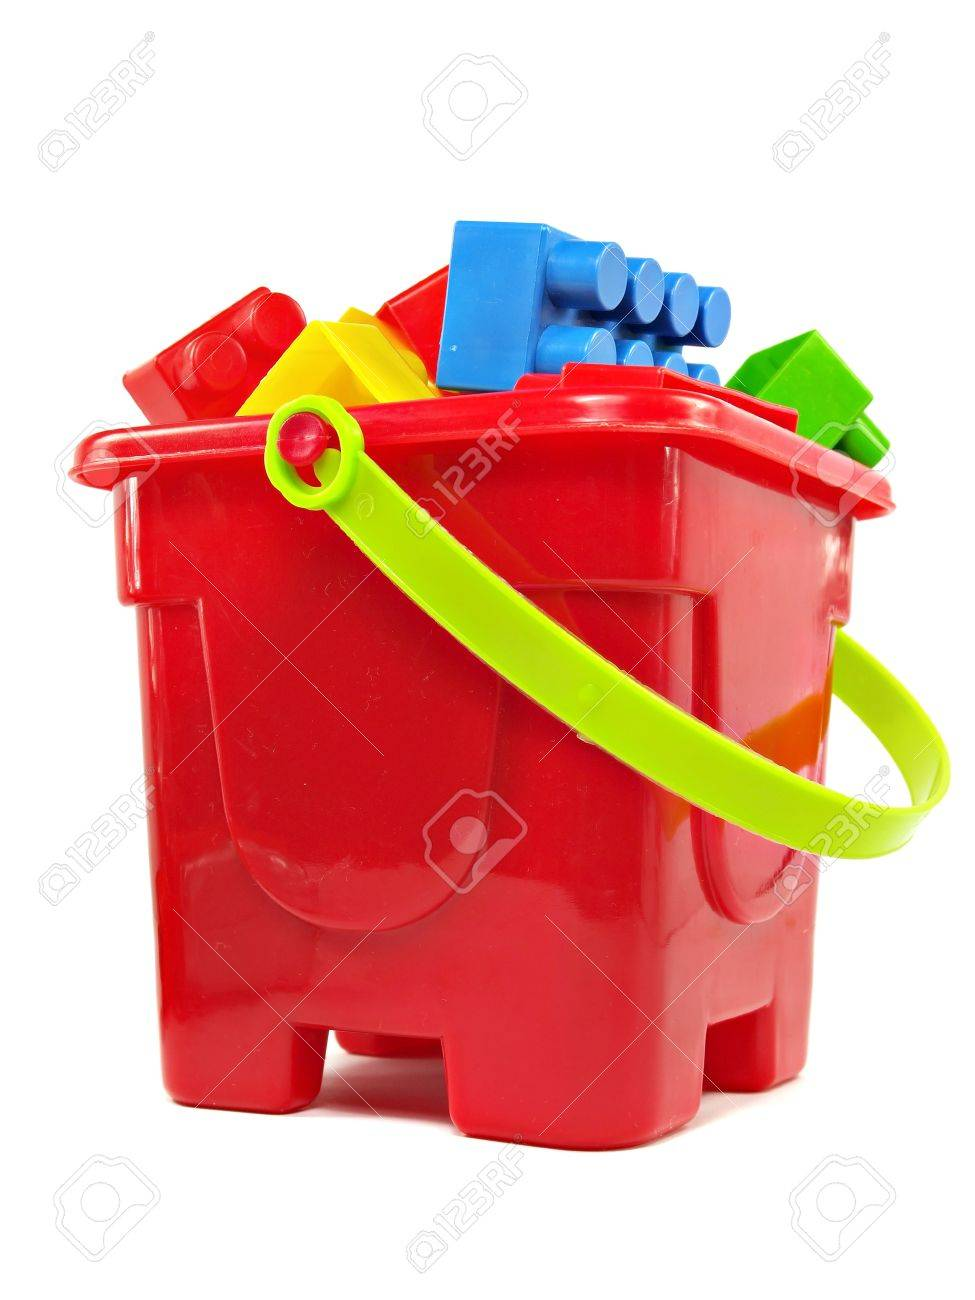 Uncategorized Toy Pail plastic building blocks in red toy pail on a white background stock photo 15554481